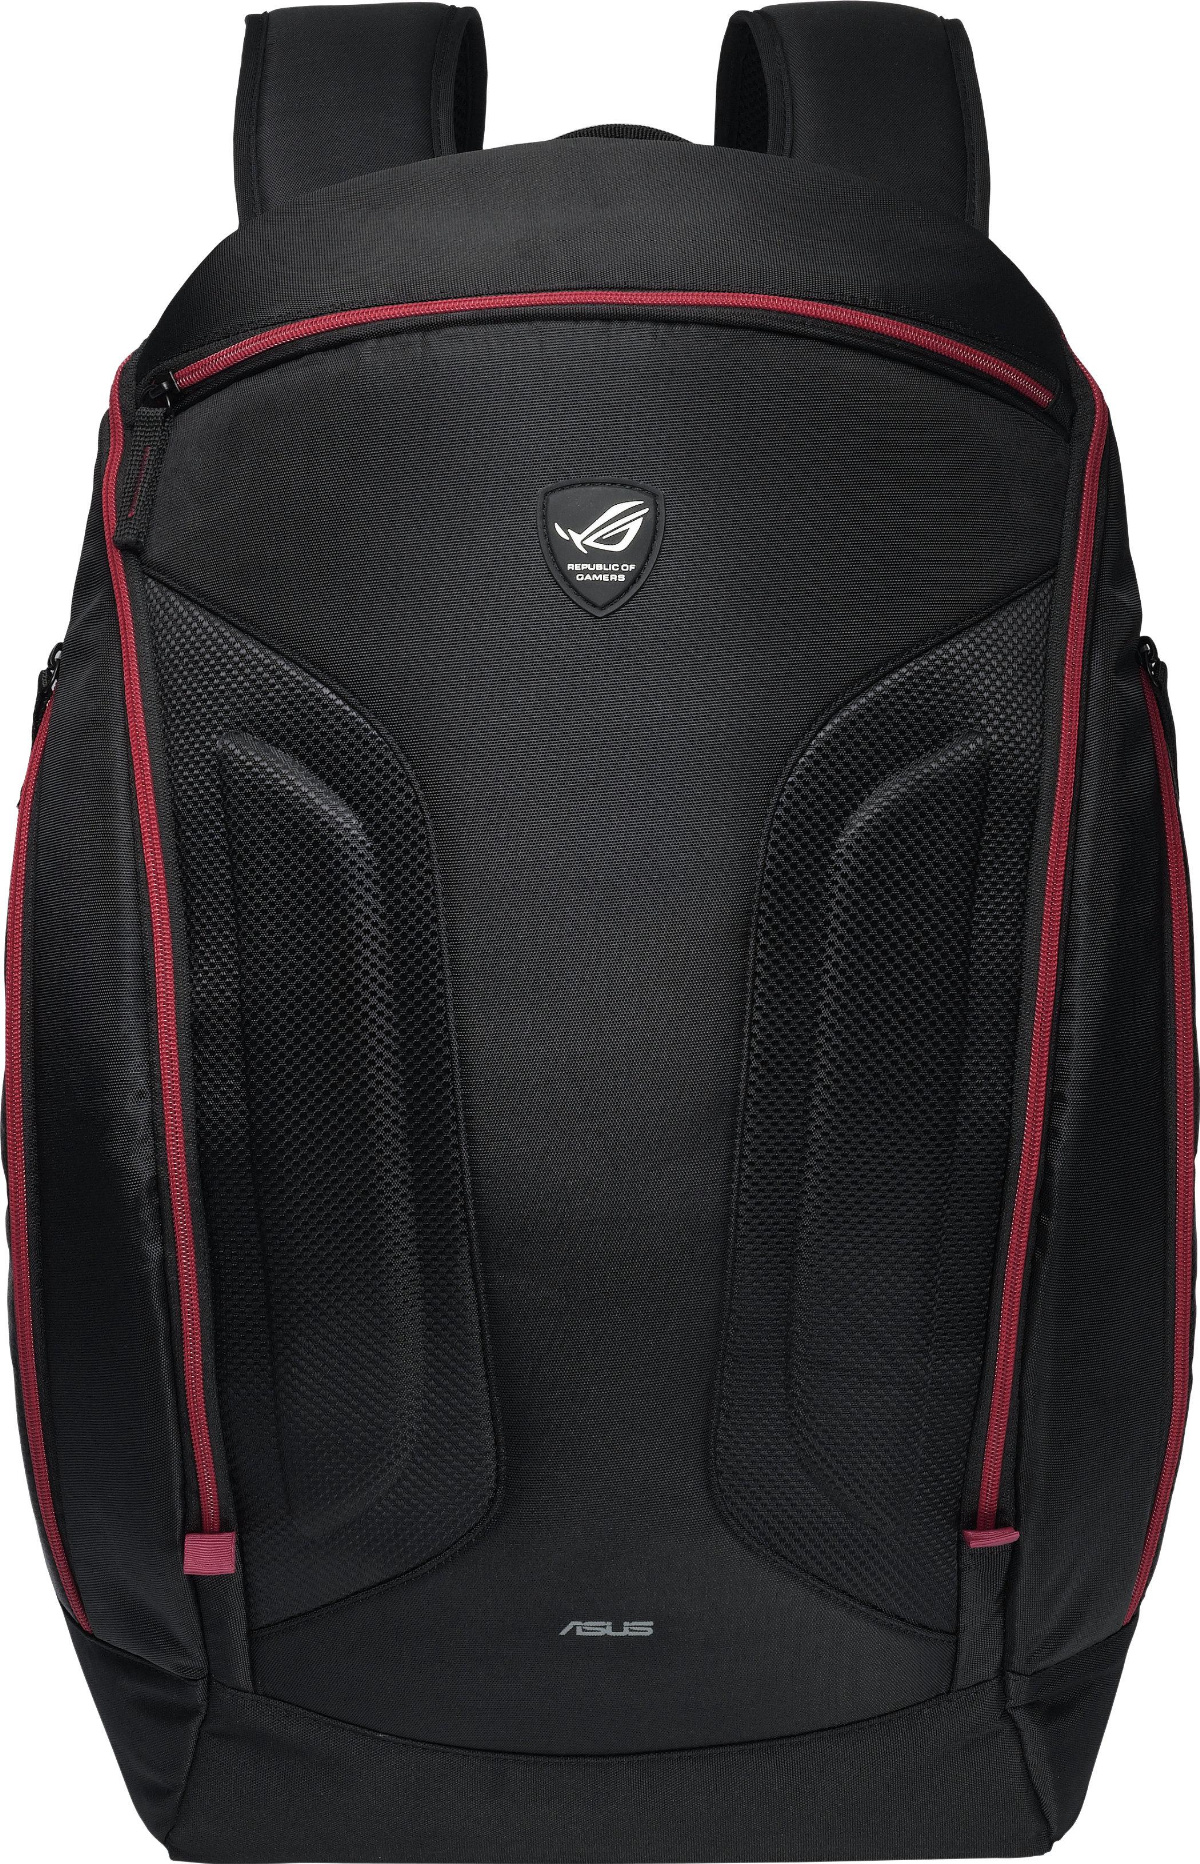 Раница за лаптоп ASUS ROG Shuttle 2 Gaming backpack